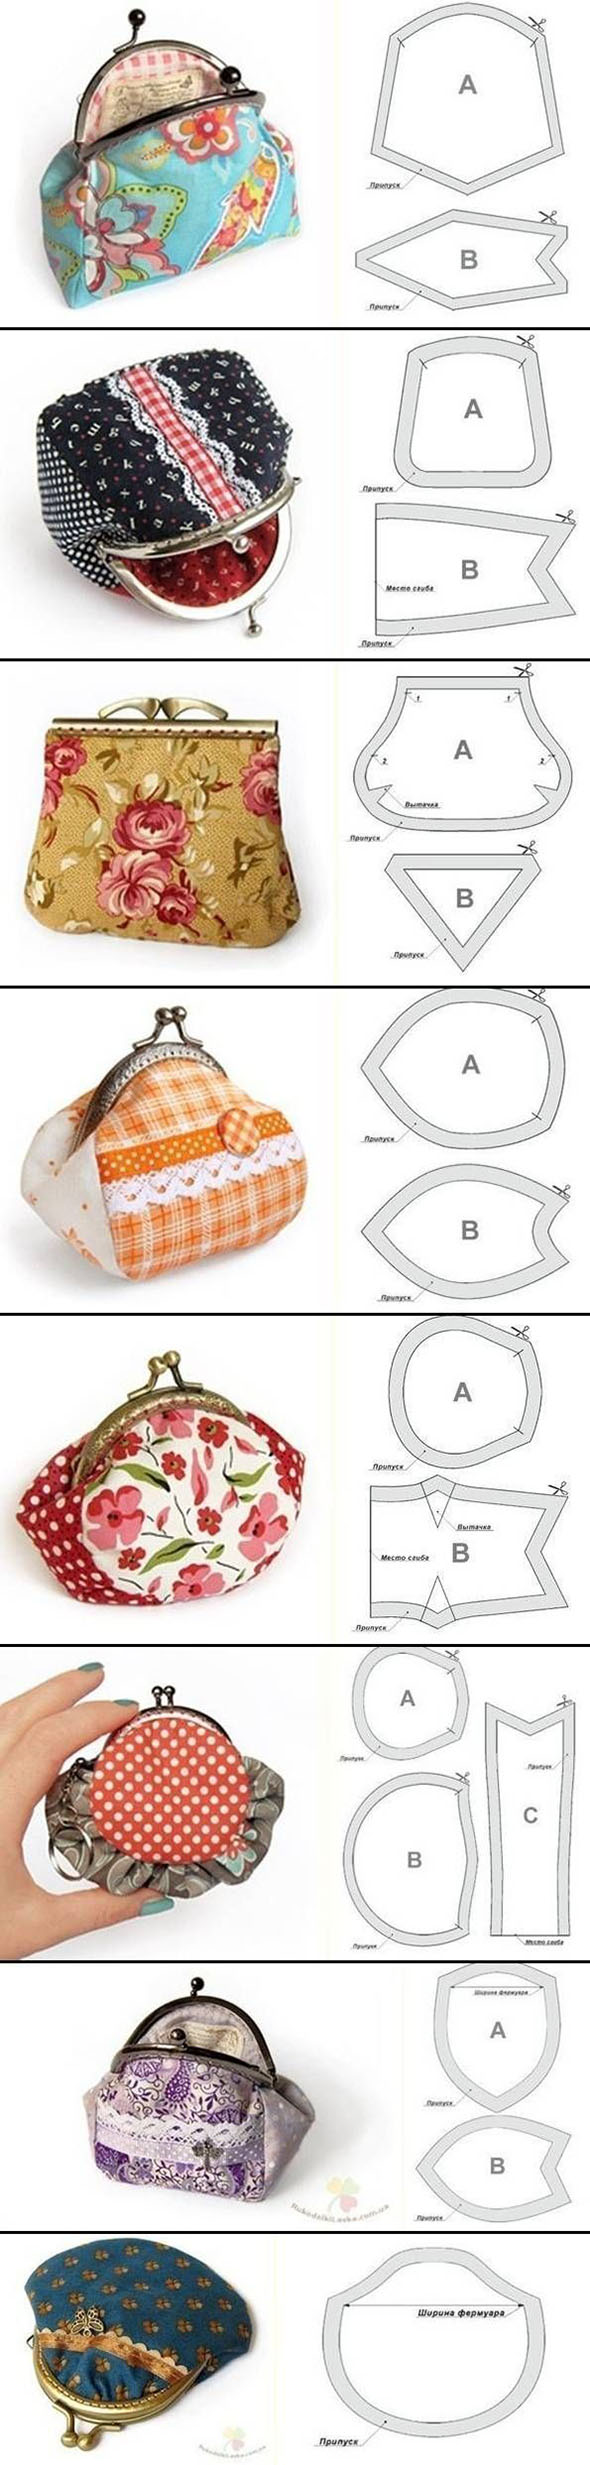 Cute Purse Templates11